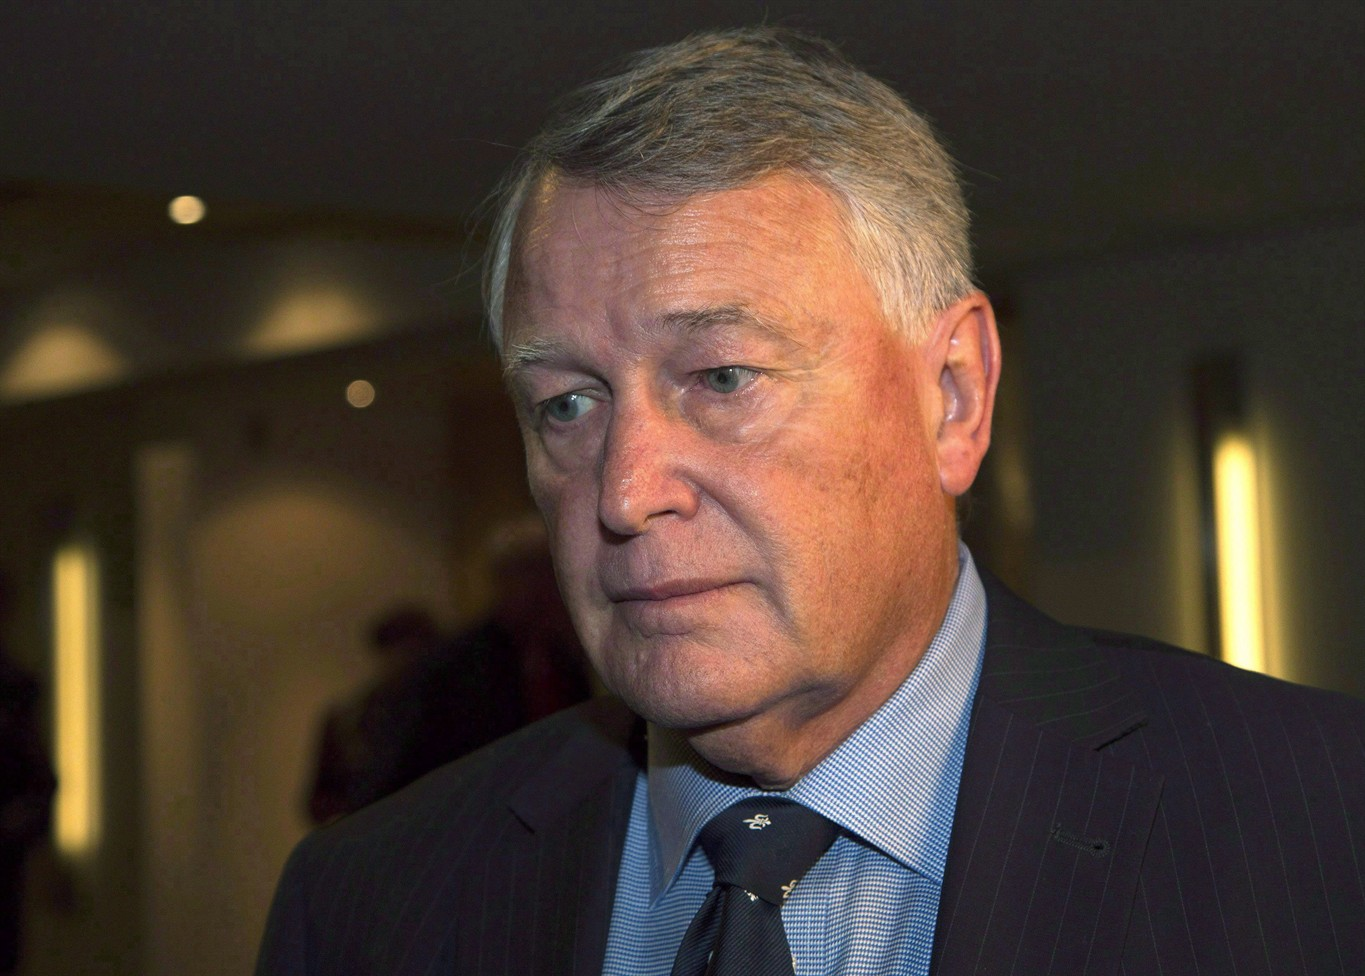 Canada judge resigns over 'keep your knees together' comment in rape trial